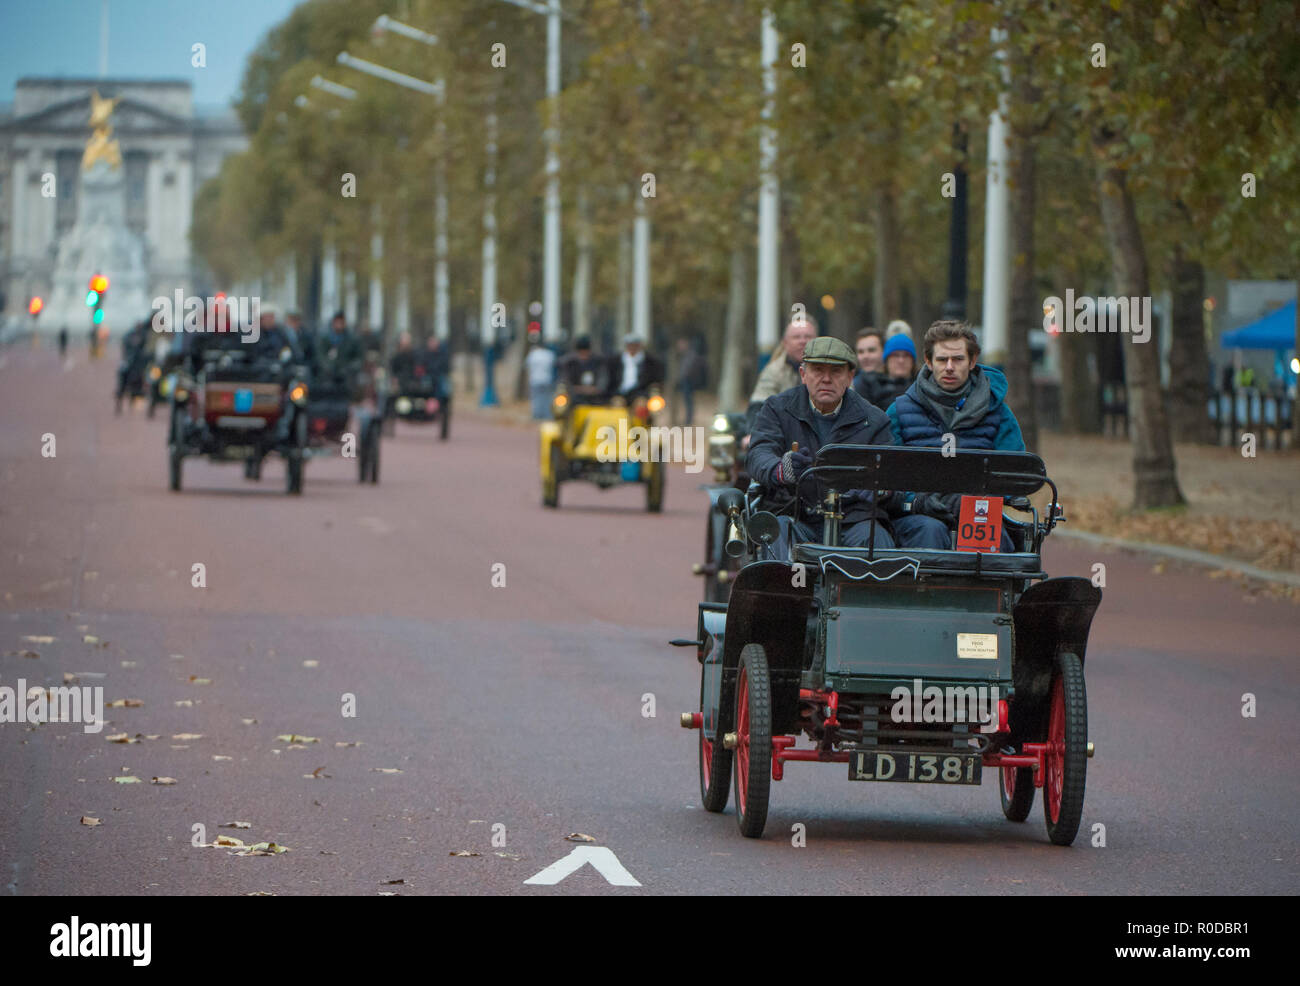 The Mall, London, UK. 4 November, 2018. Bonhams London to Brighton Veteran Car Run 2018 early entrants trundle down The Mall after the sunrise start in Hyde Park at 06.59am. The longest running motoring event in the world, with 400 veteran vehicles starting the 60 mile journey to the south coast, and the first car due to arrive at 09.59am. Credit: Malcolm Park/Alamy Live News. Stock Photo